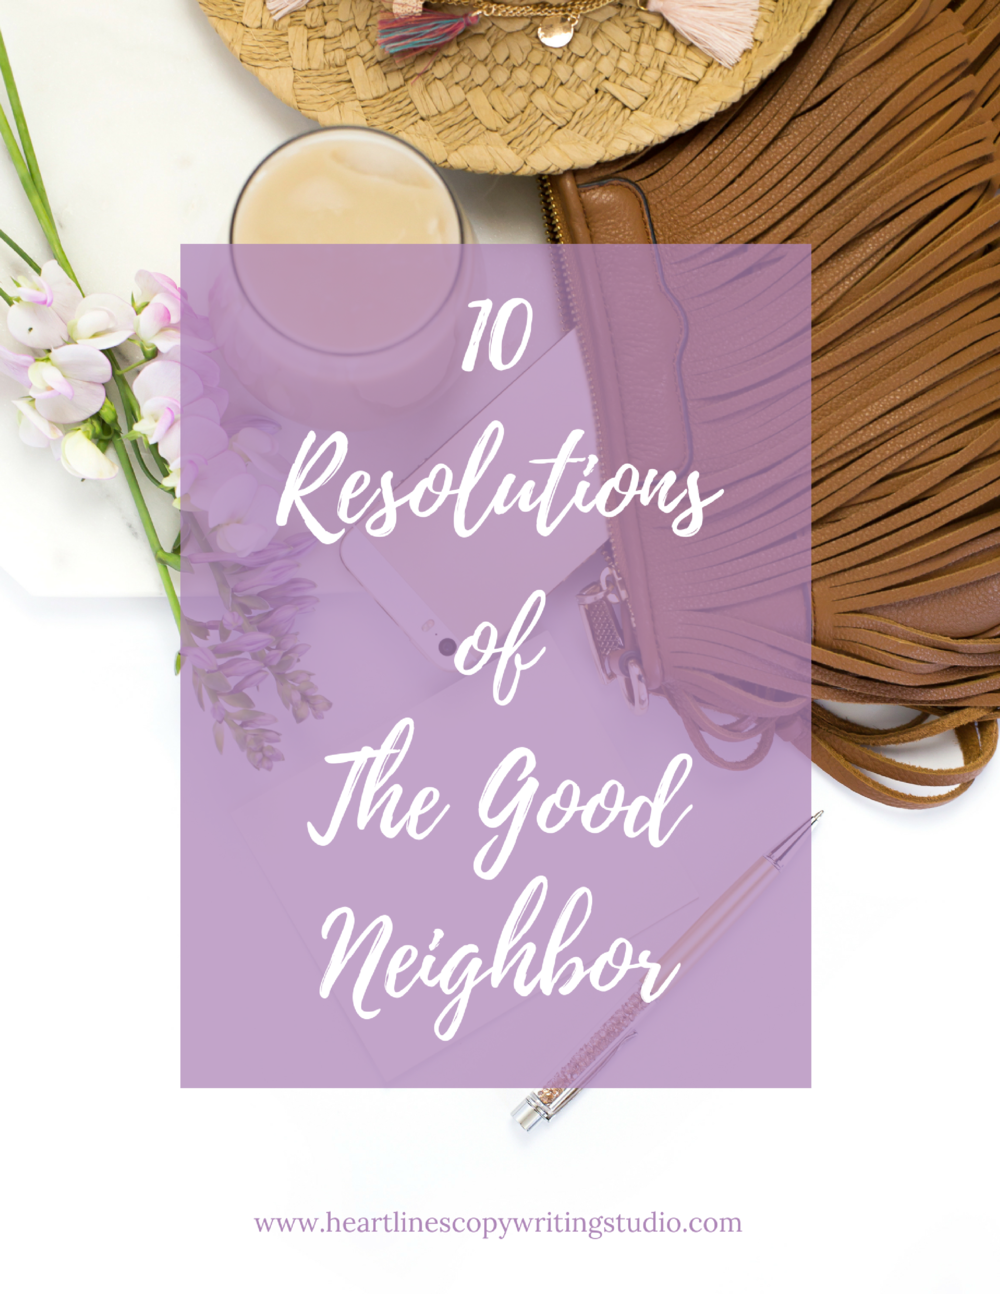 Download the PDF version of The 10 Resolutions of The Good Neighbor right here.